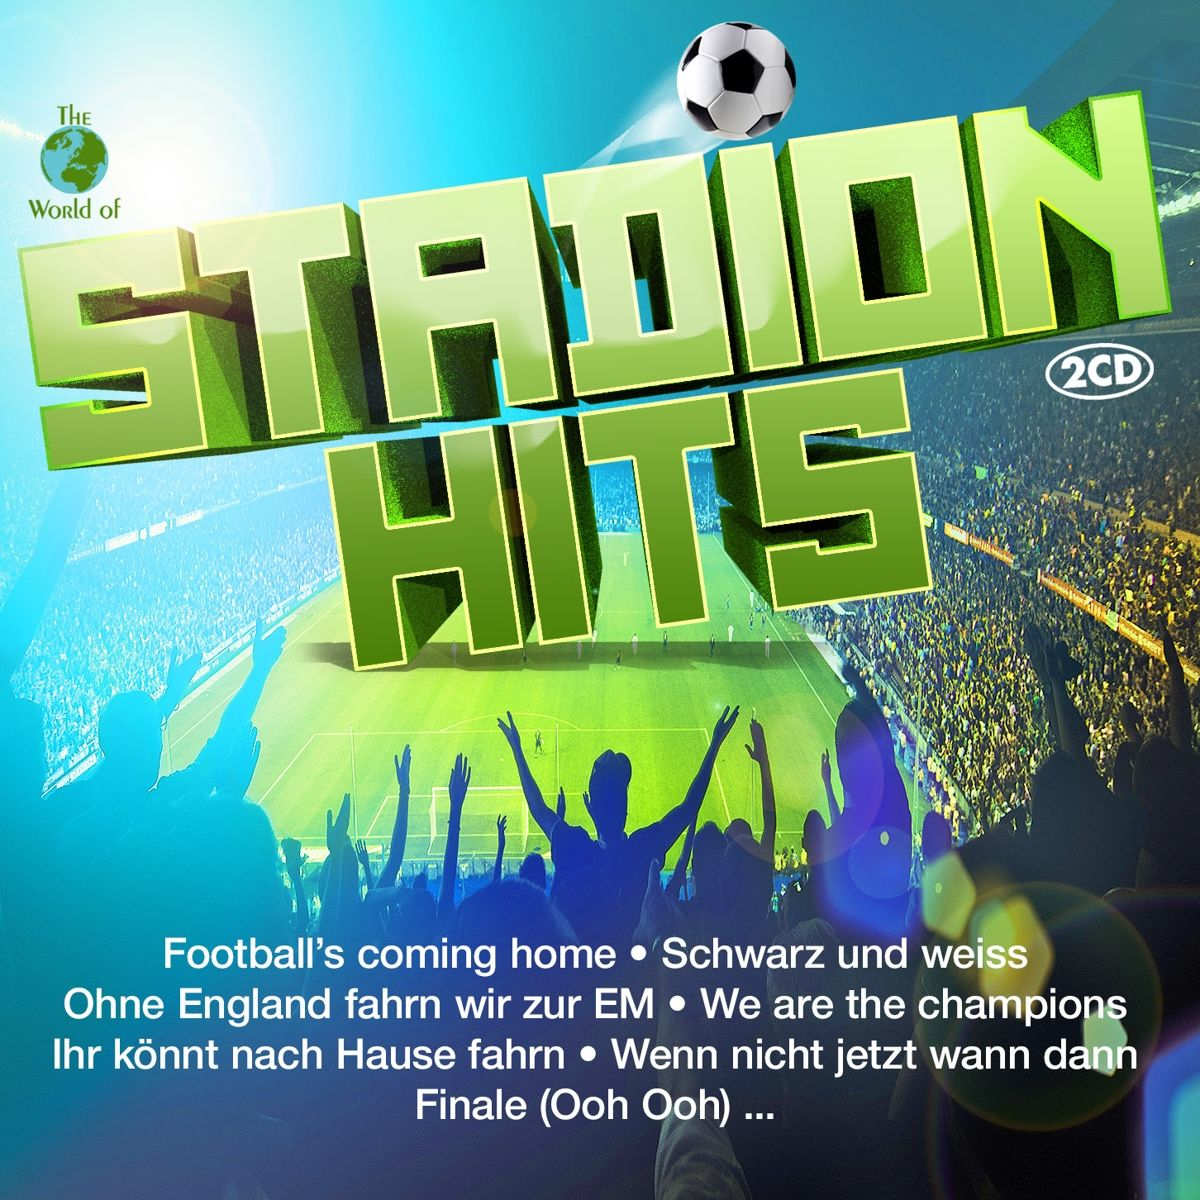 ultratop be - The World Of Stadion Hits